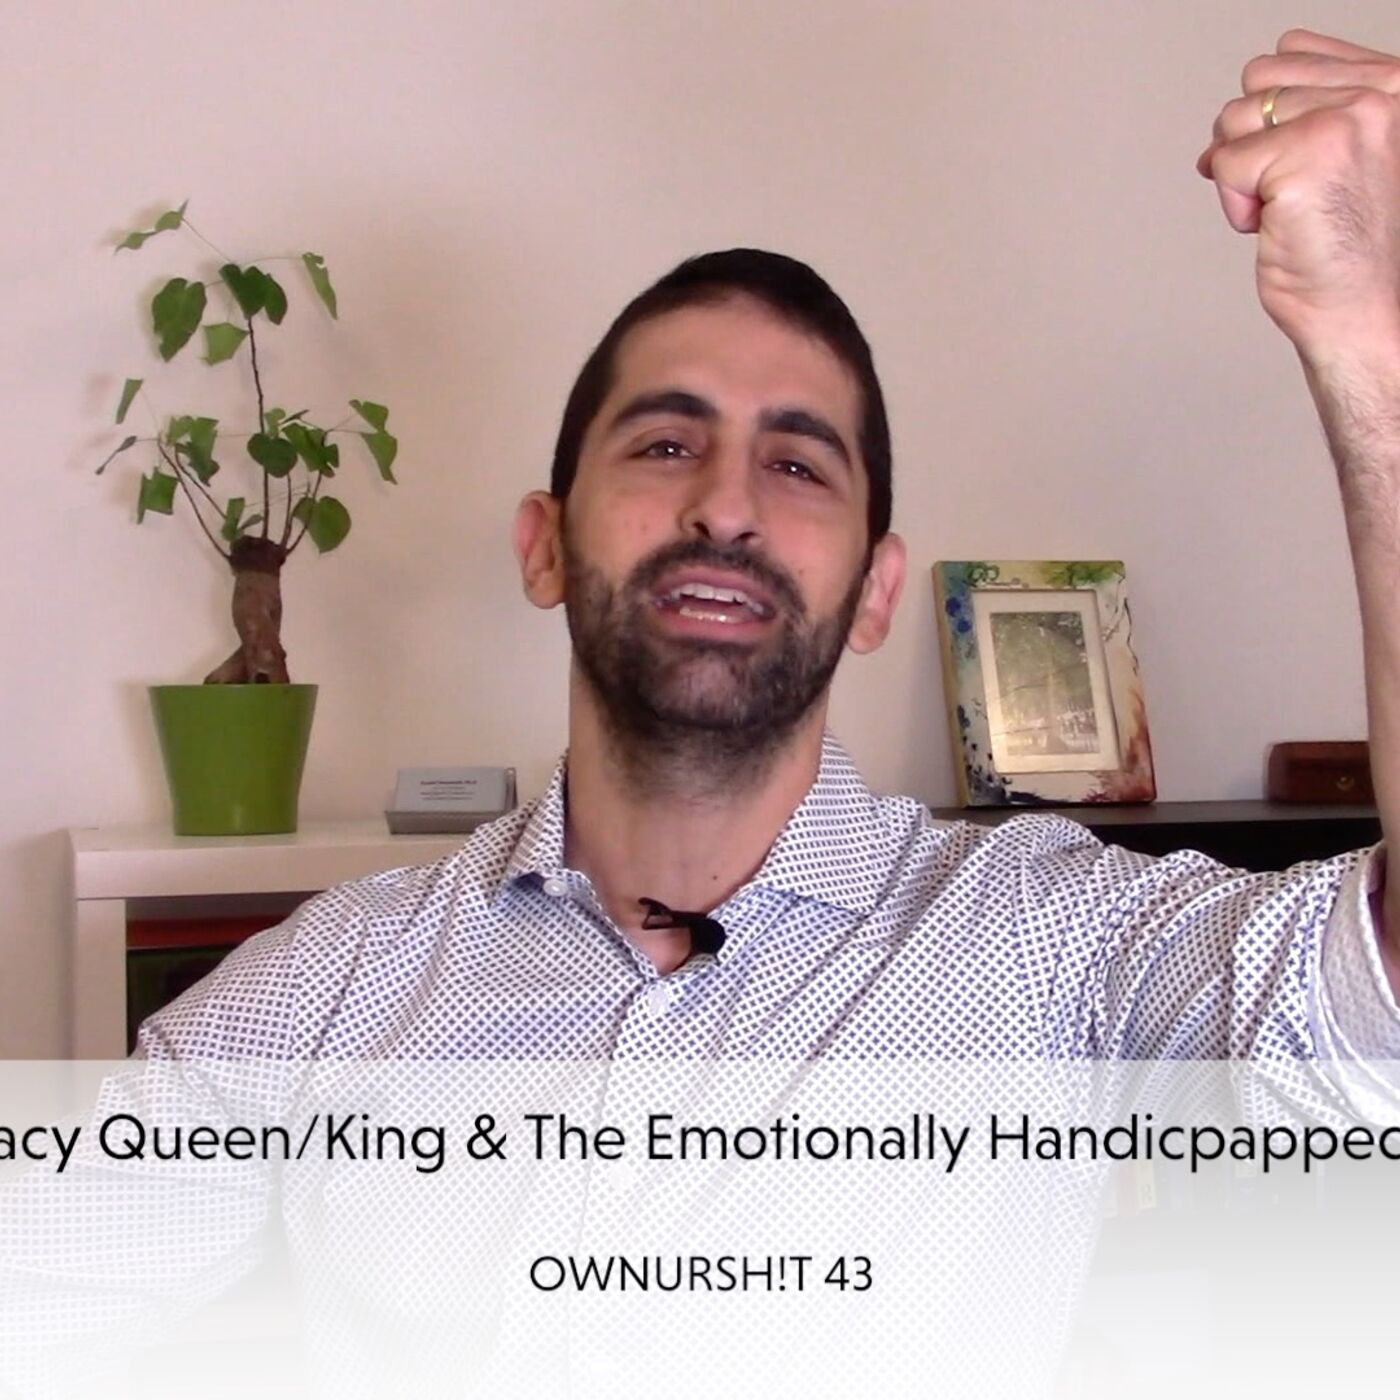 OWNURSH!T 43 - The Intimacy Queen/King and The Emotionally Handicapped dynamic